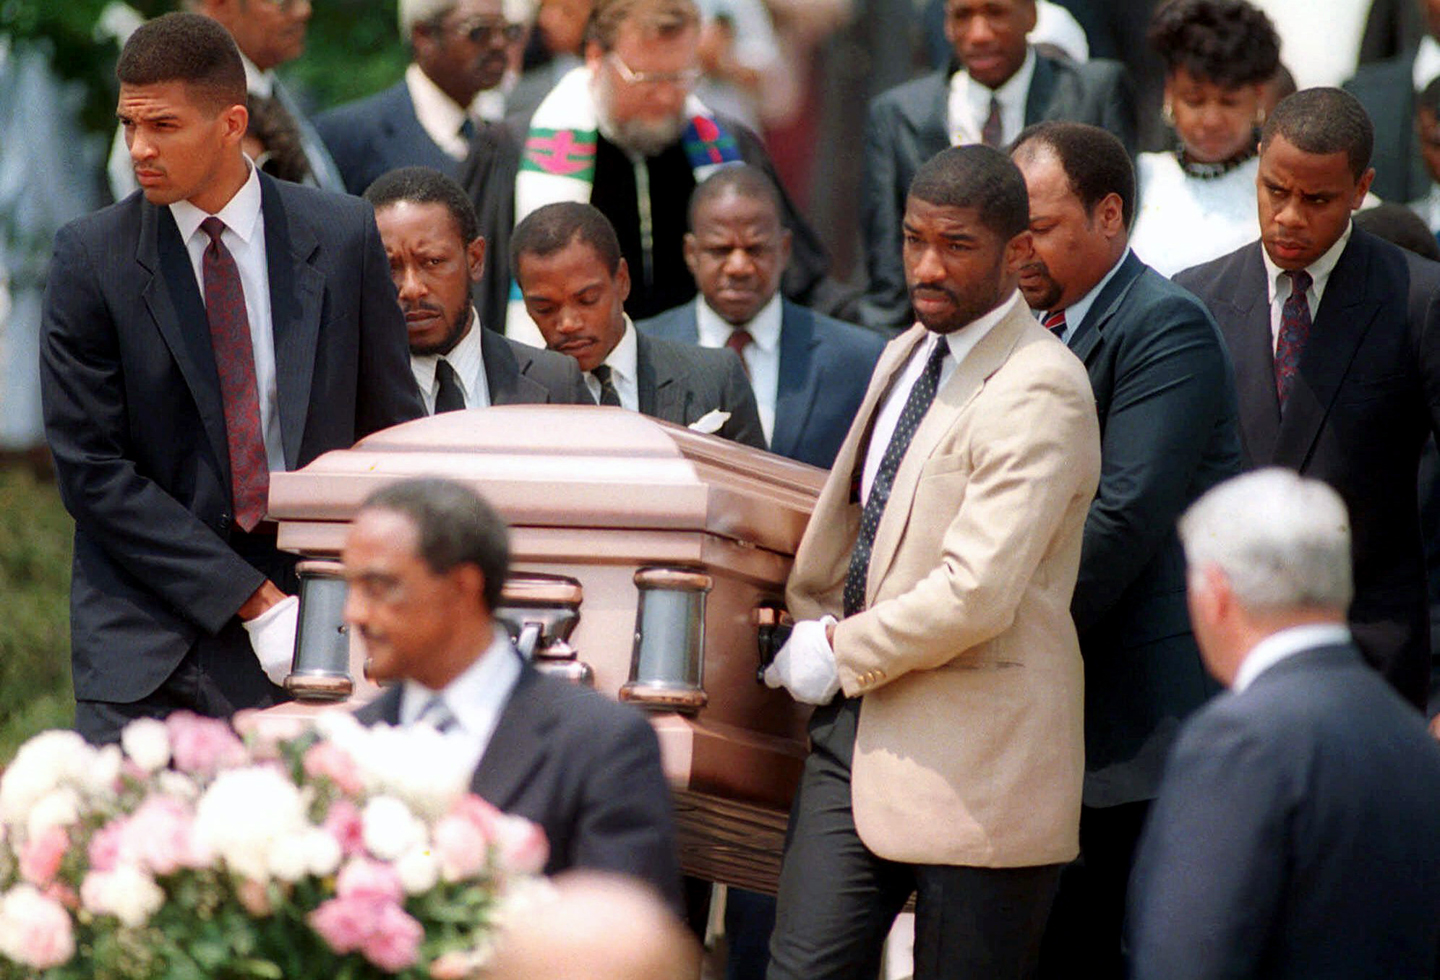 Friends of the late University of Maryland basketball star Len Bias, carry his casket from the college chapel in this June 23, 1986 photo, after a private funeral.